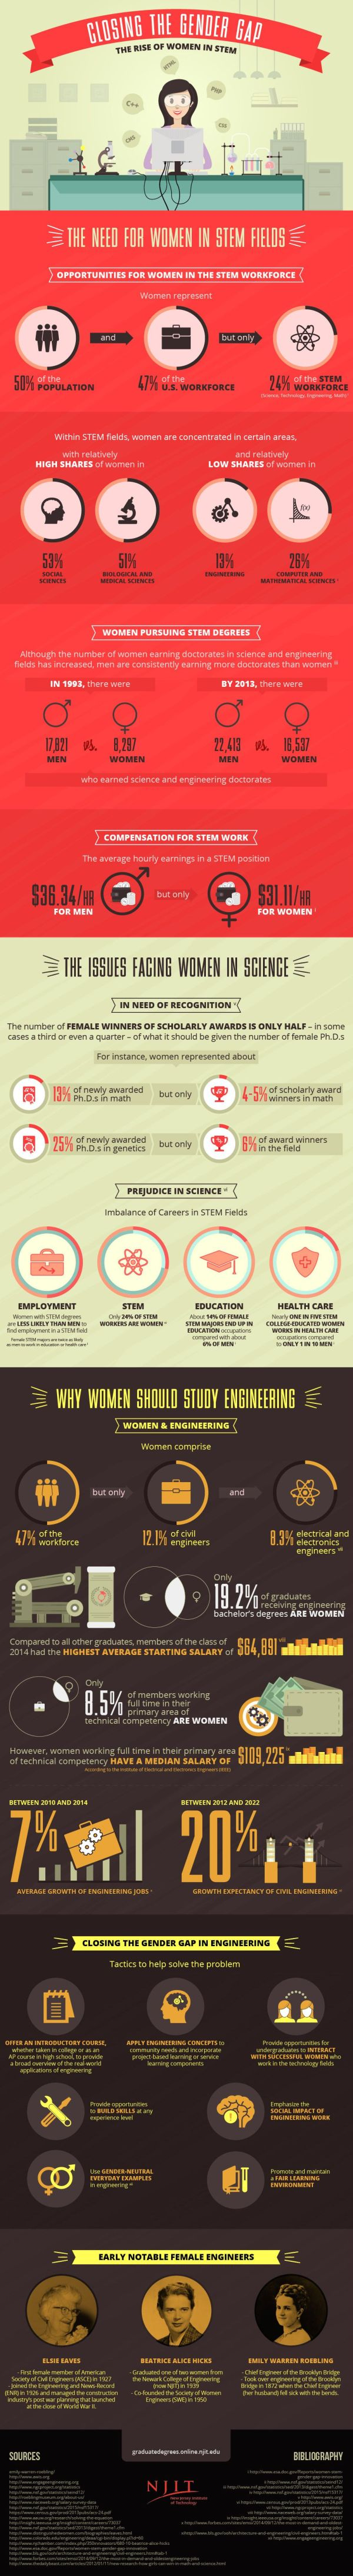 Closing Gender Gap #infographic Visualistan